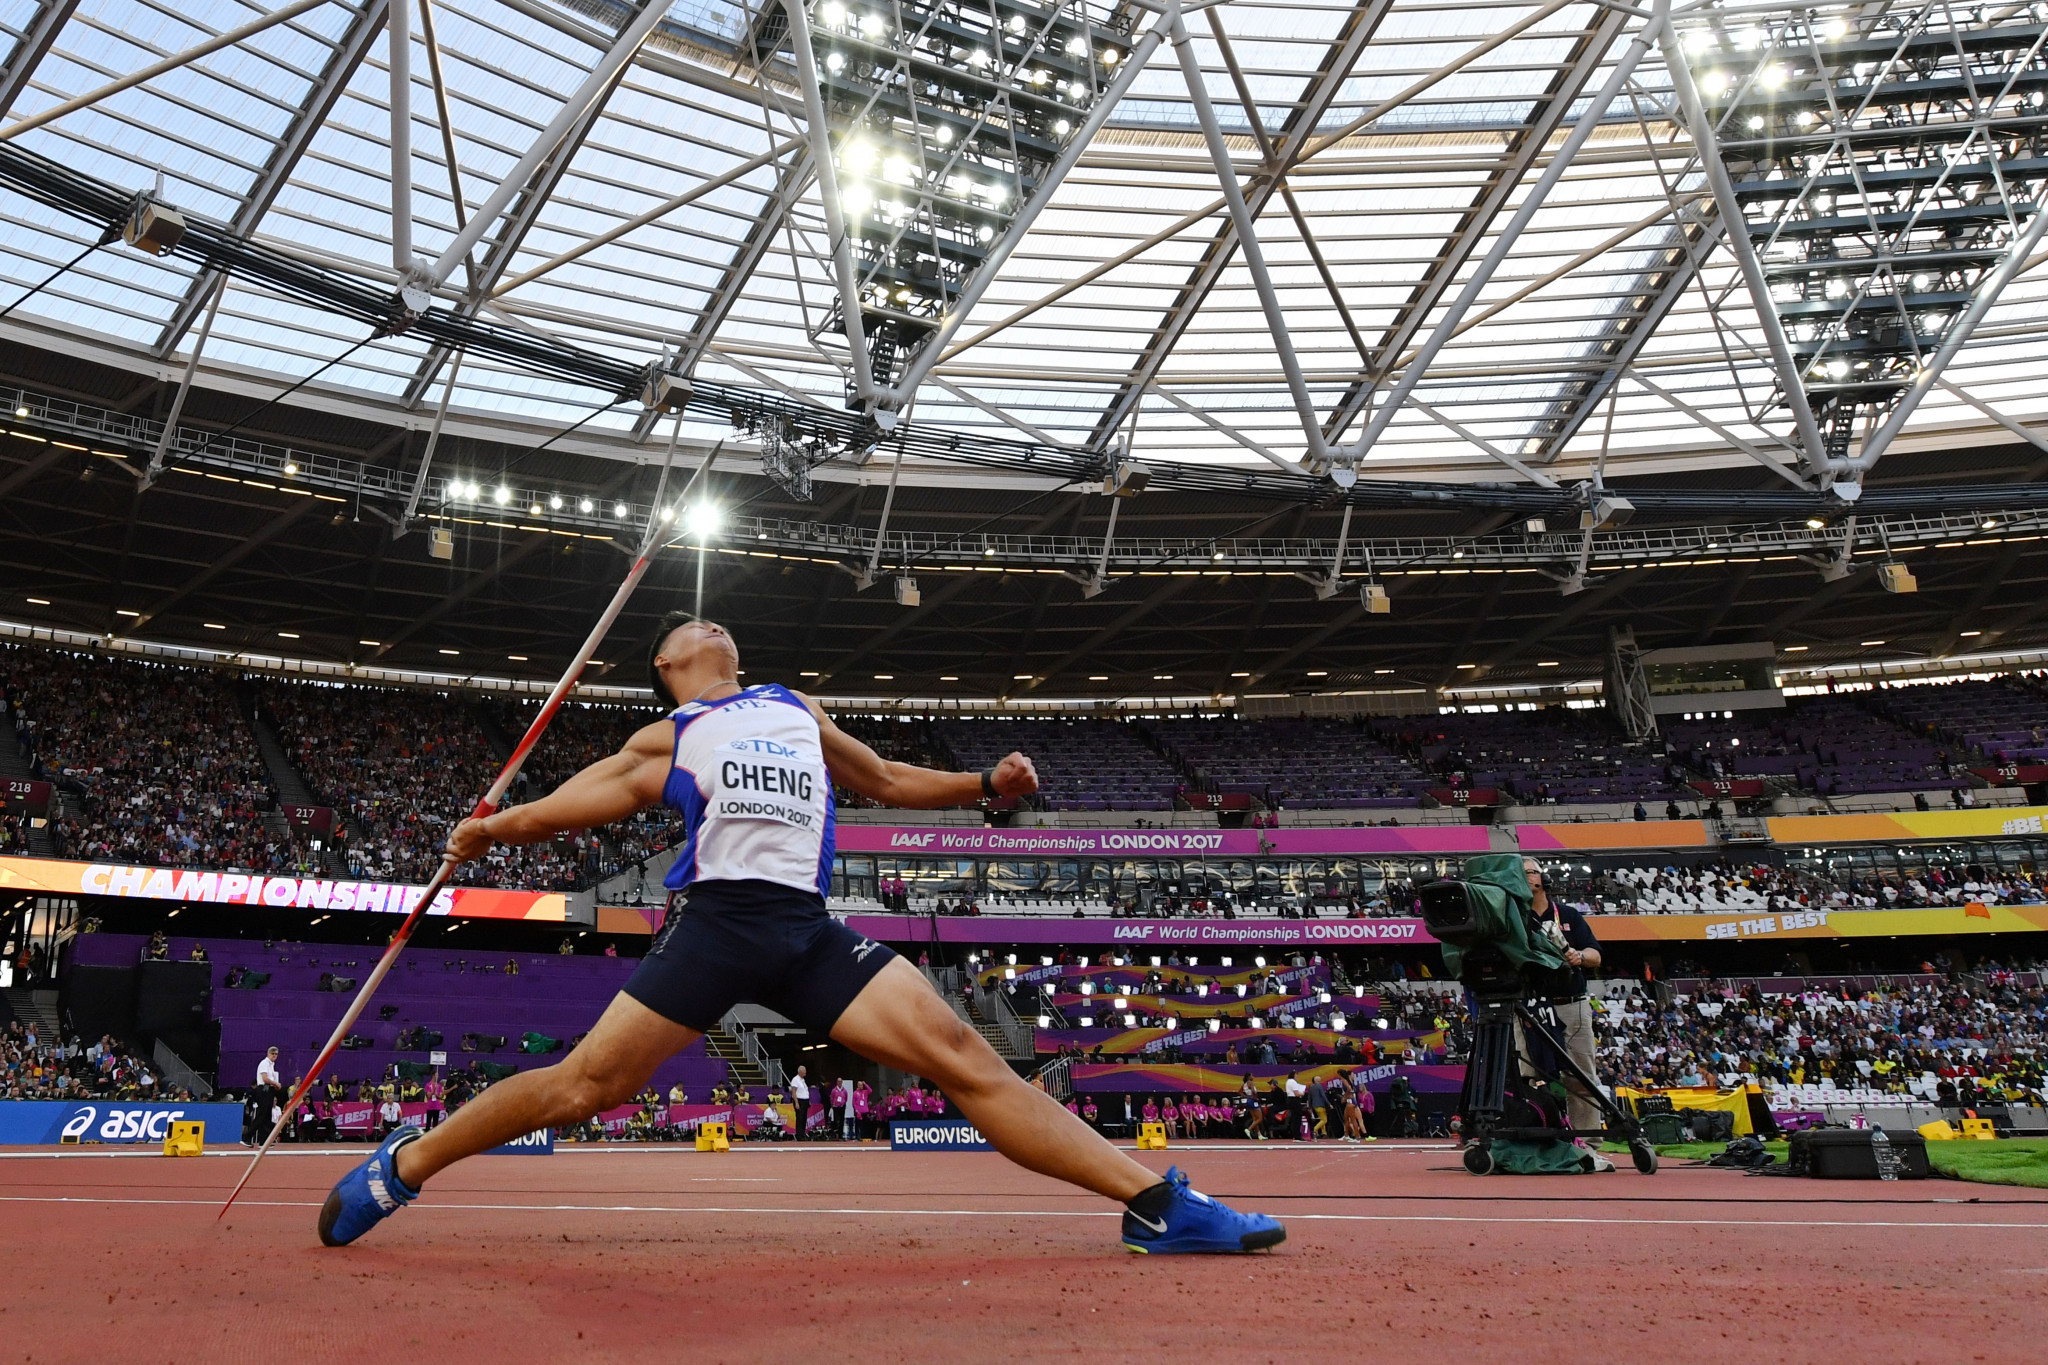 Taiwan's Cheng Chao-Tsun competes in the men's javelin at the 2017 IAAF World Championships in London in August 2017 ©Getty Images